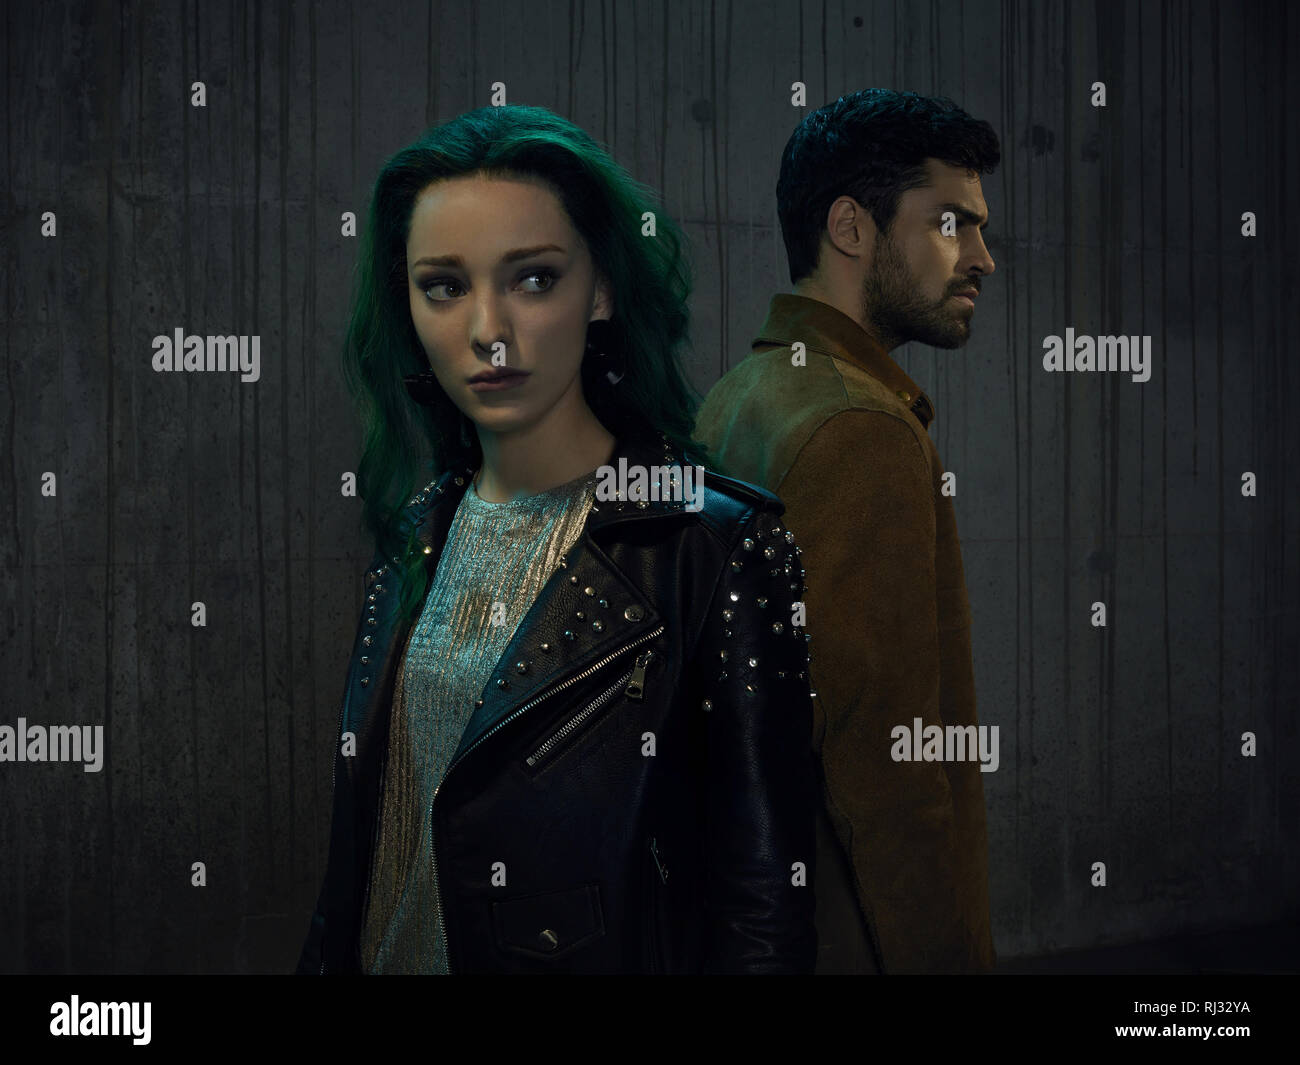 """Emma Dumont, Lorna Dane, Sean Teale, """"The Gifted"""" Season 2 (2019)  Credit: Fox Broadcasting Co. / The Hollywood Archive Stock Photo"""